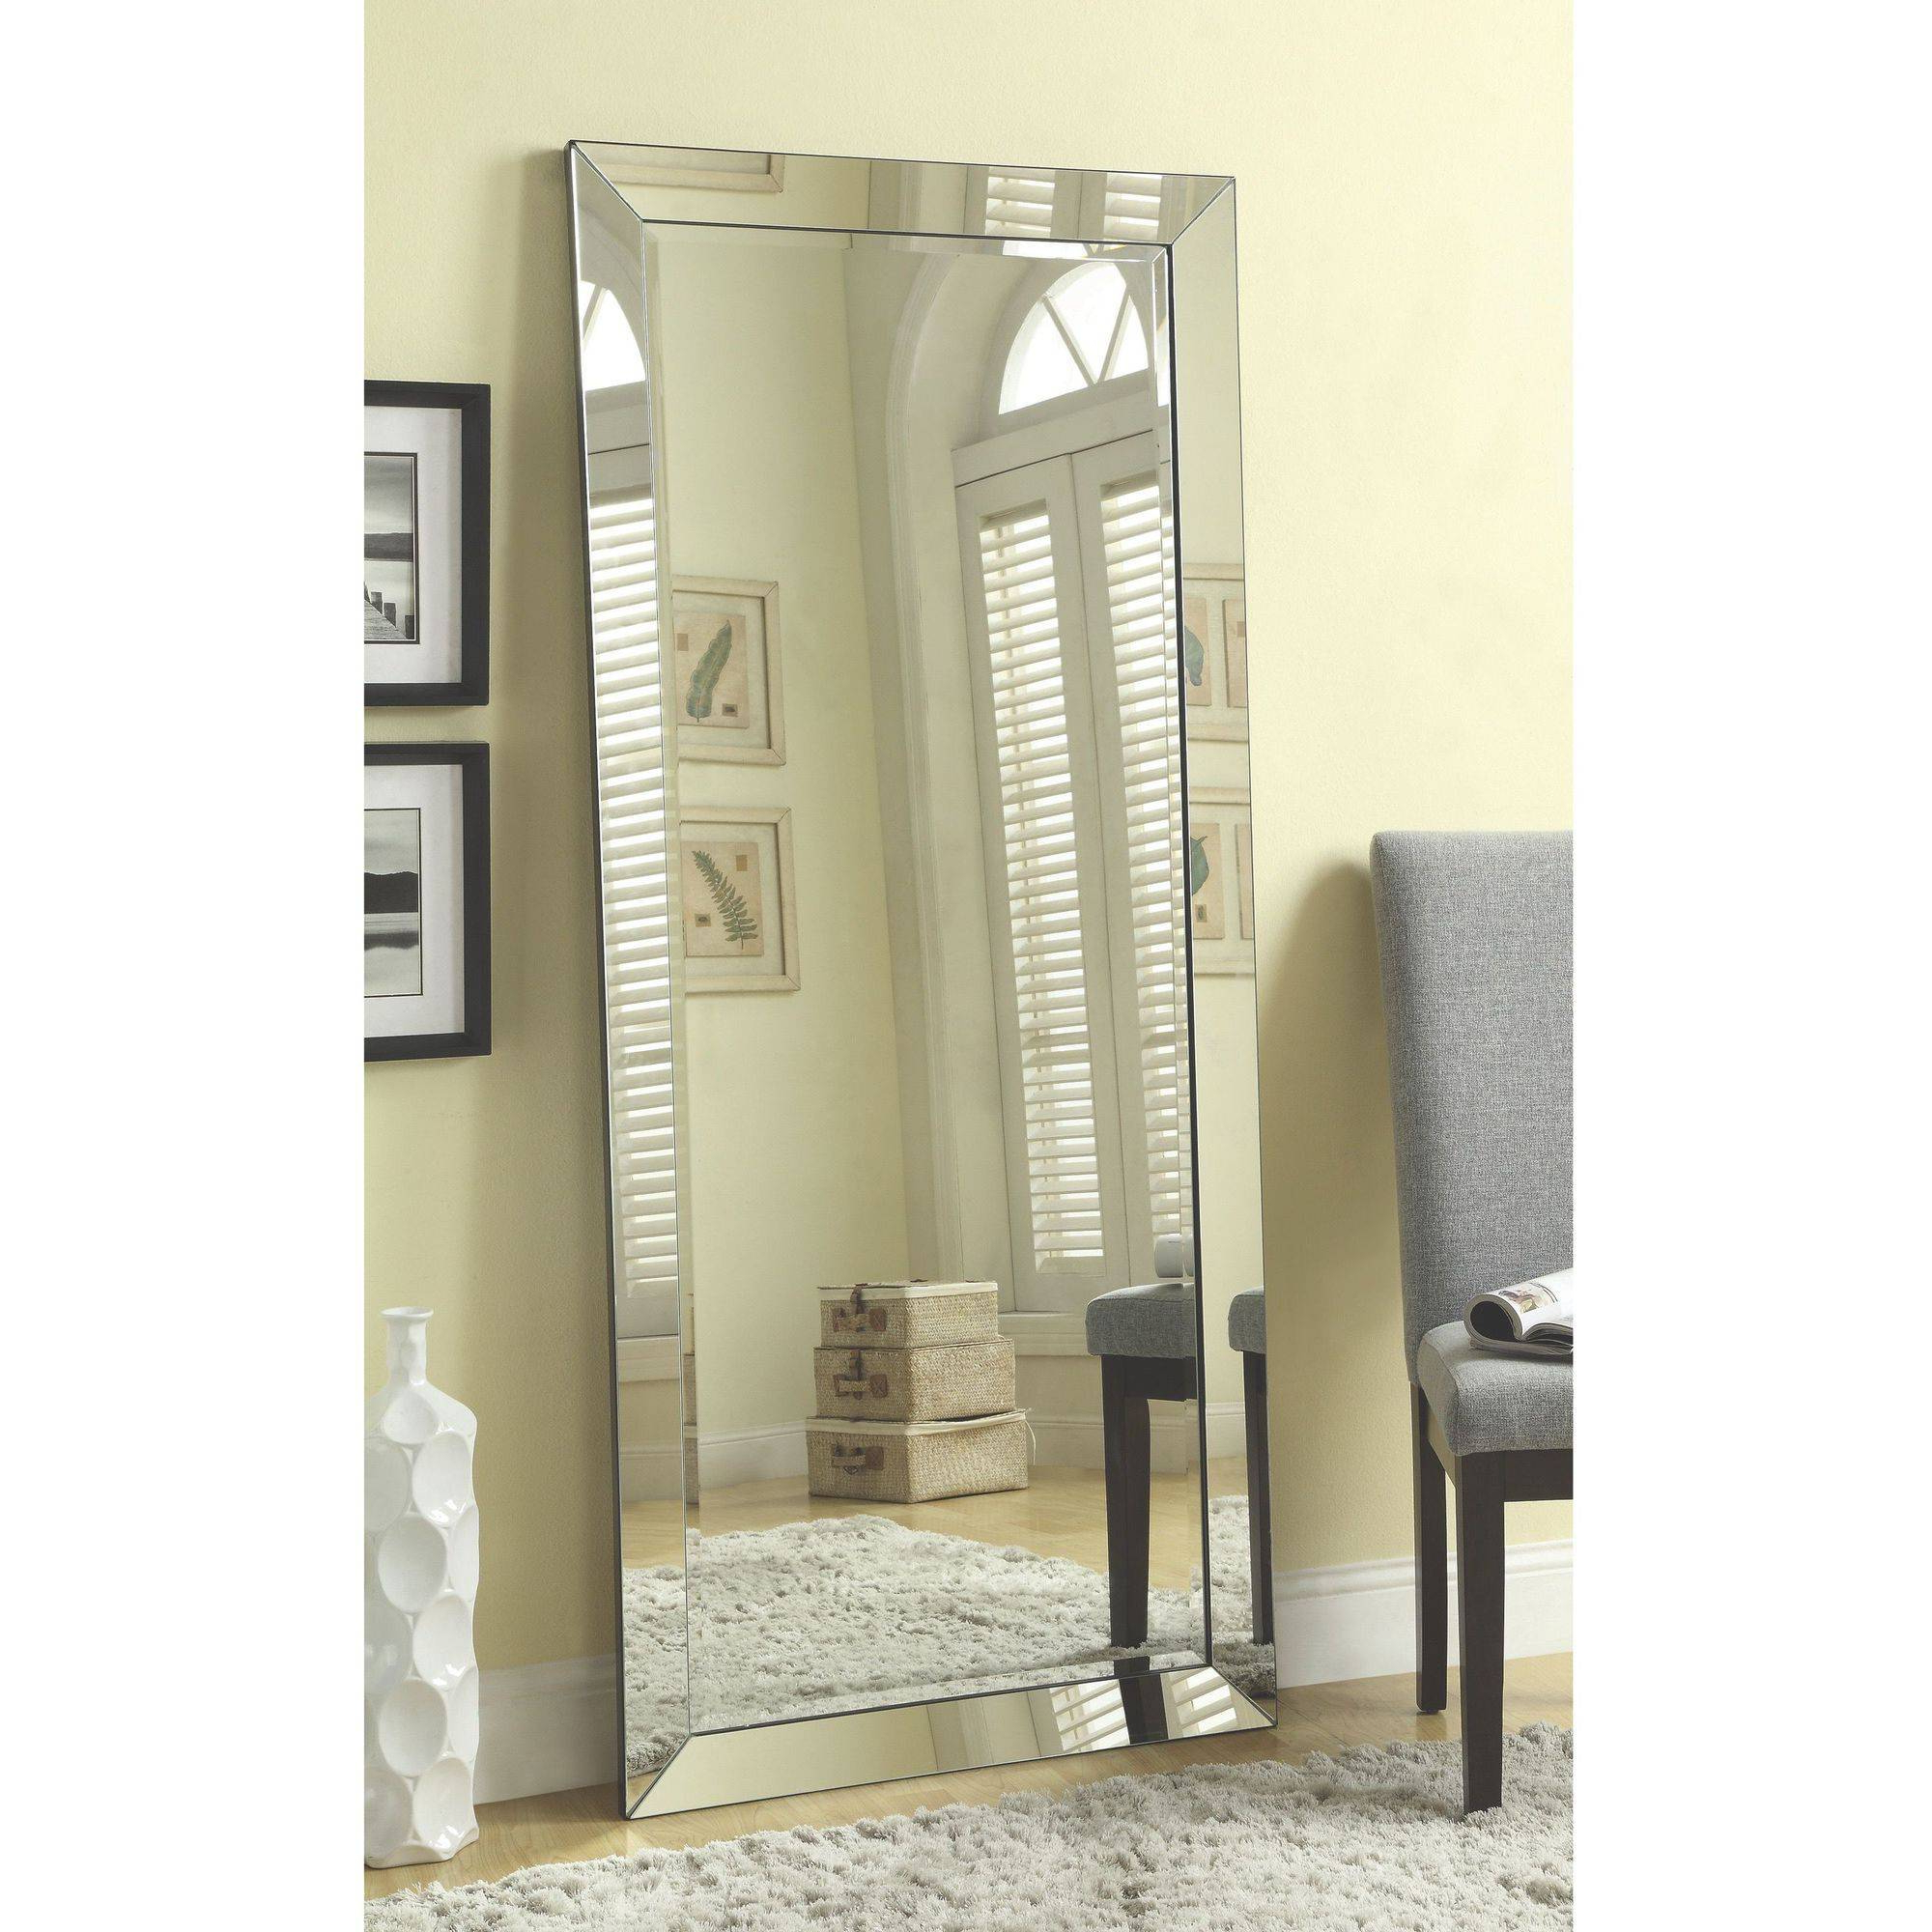 34 Most Unbeatable Long Wall Mirrors Mirror No Frame Large Throughout Newest No Frame Wall Mirrors (View 11 of 20)